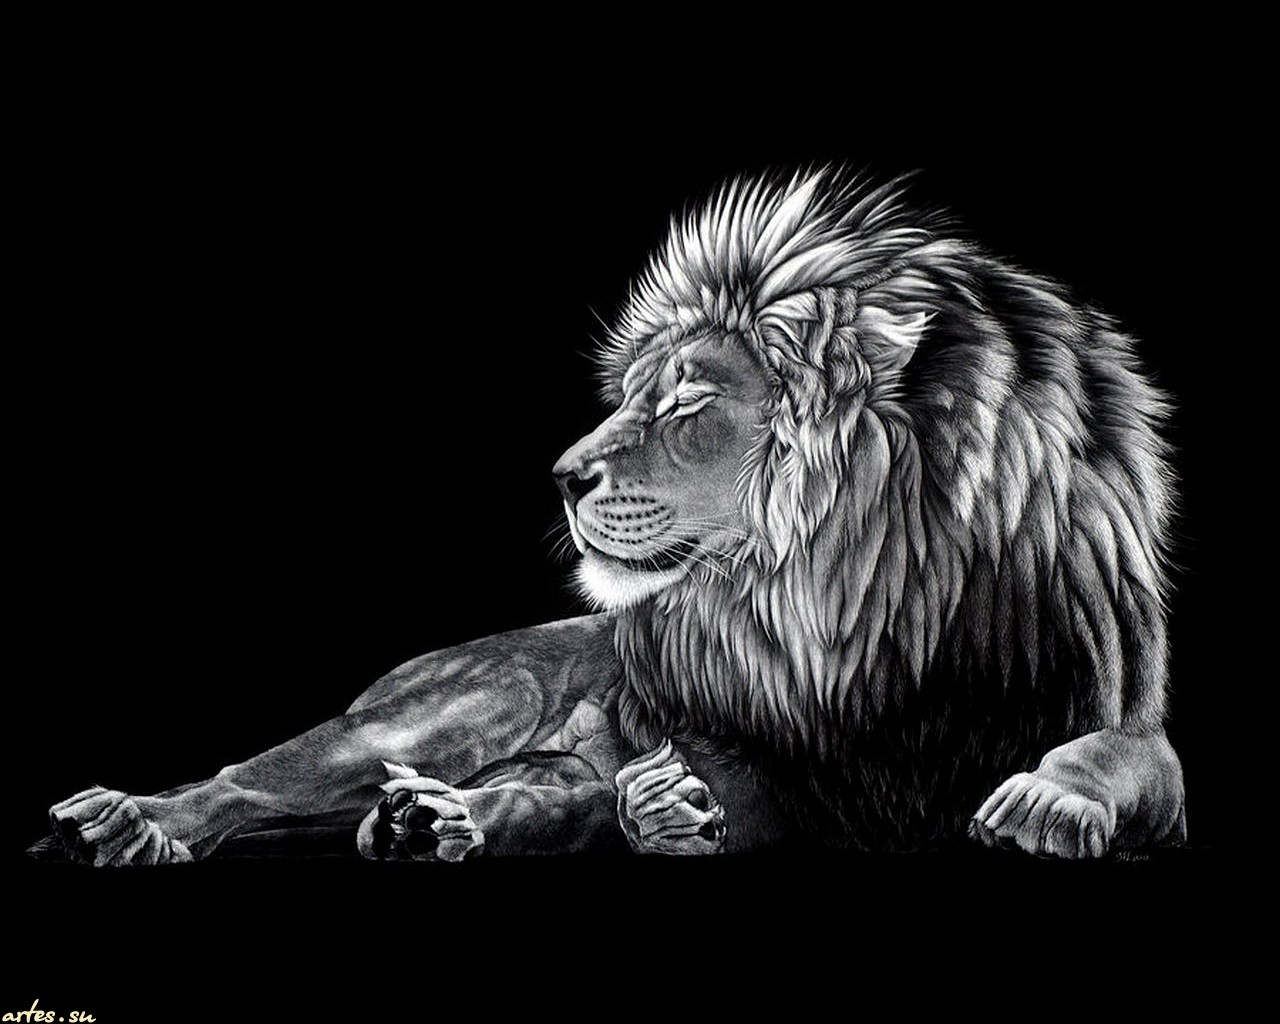 lion pictures black lion hd wallpapers black lion hd wallpapers 1280x1024